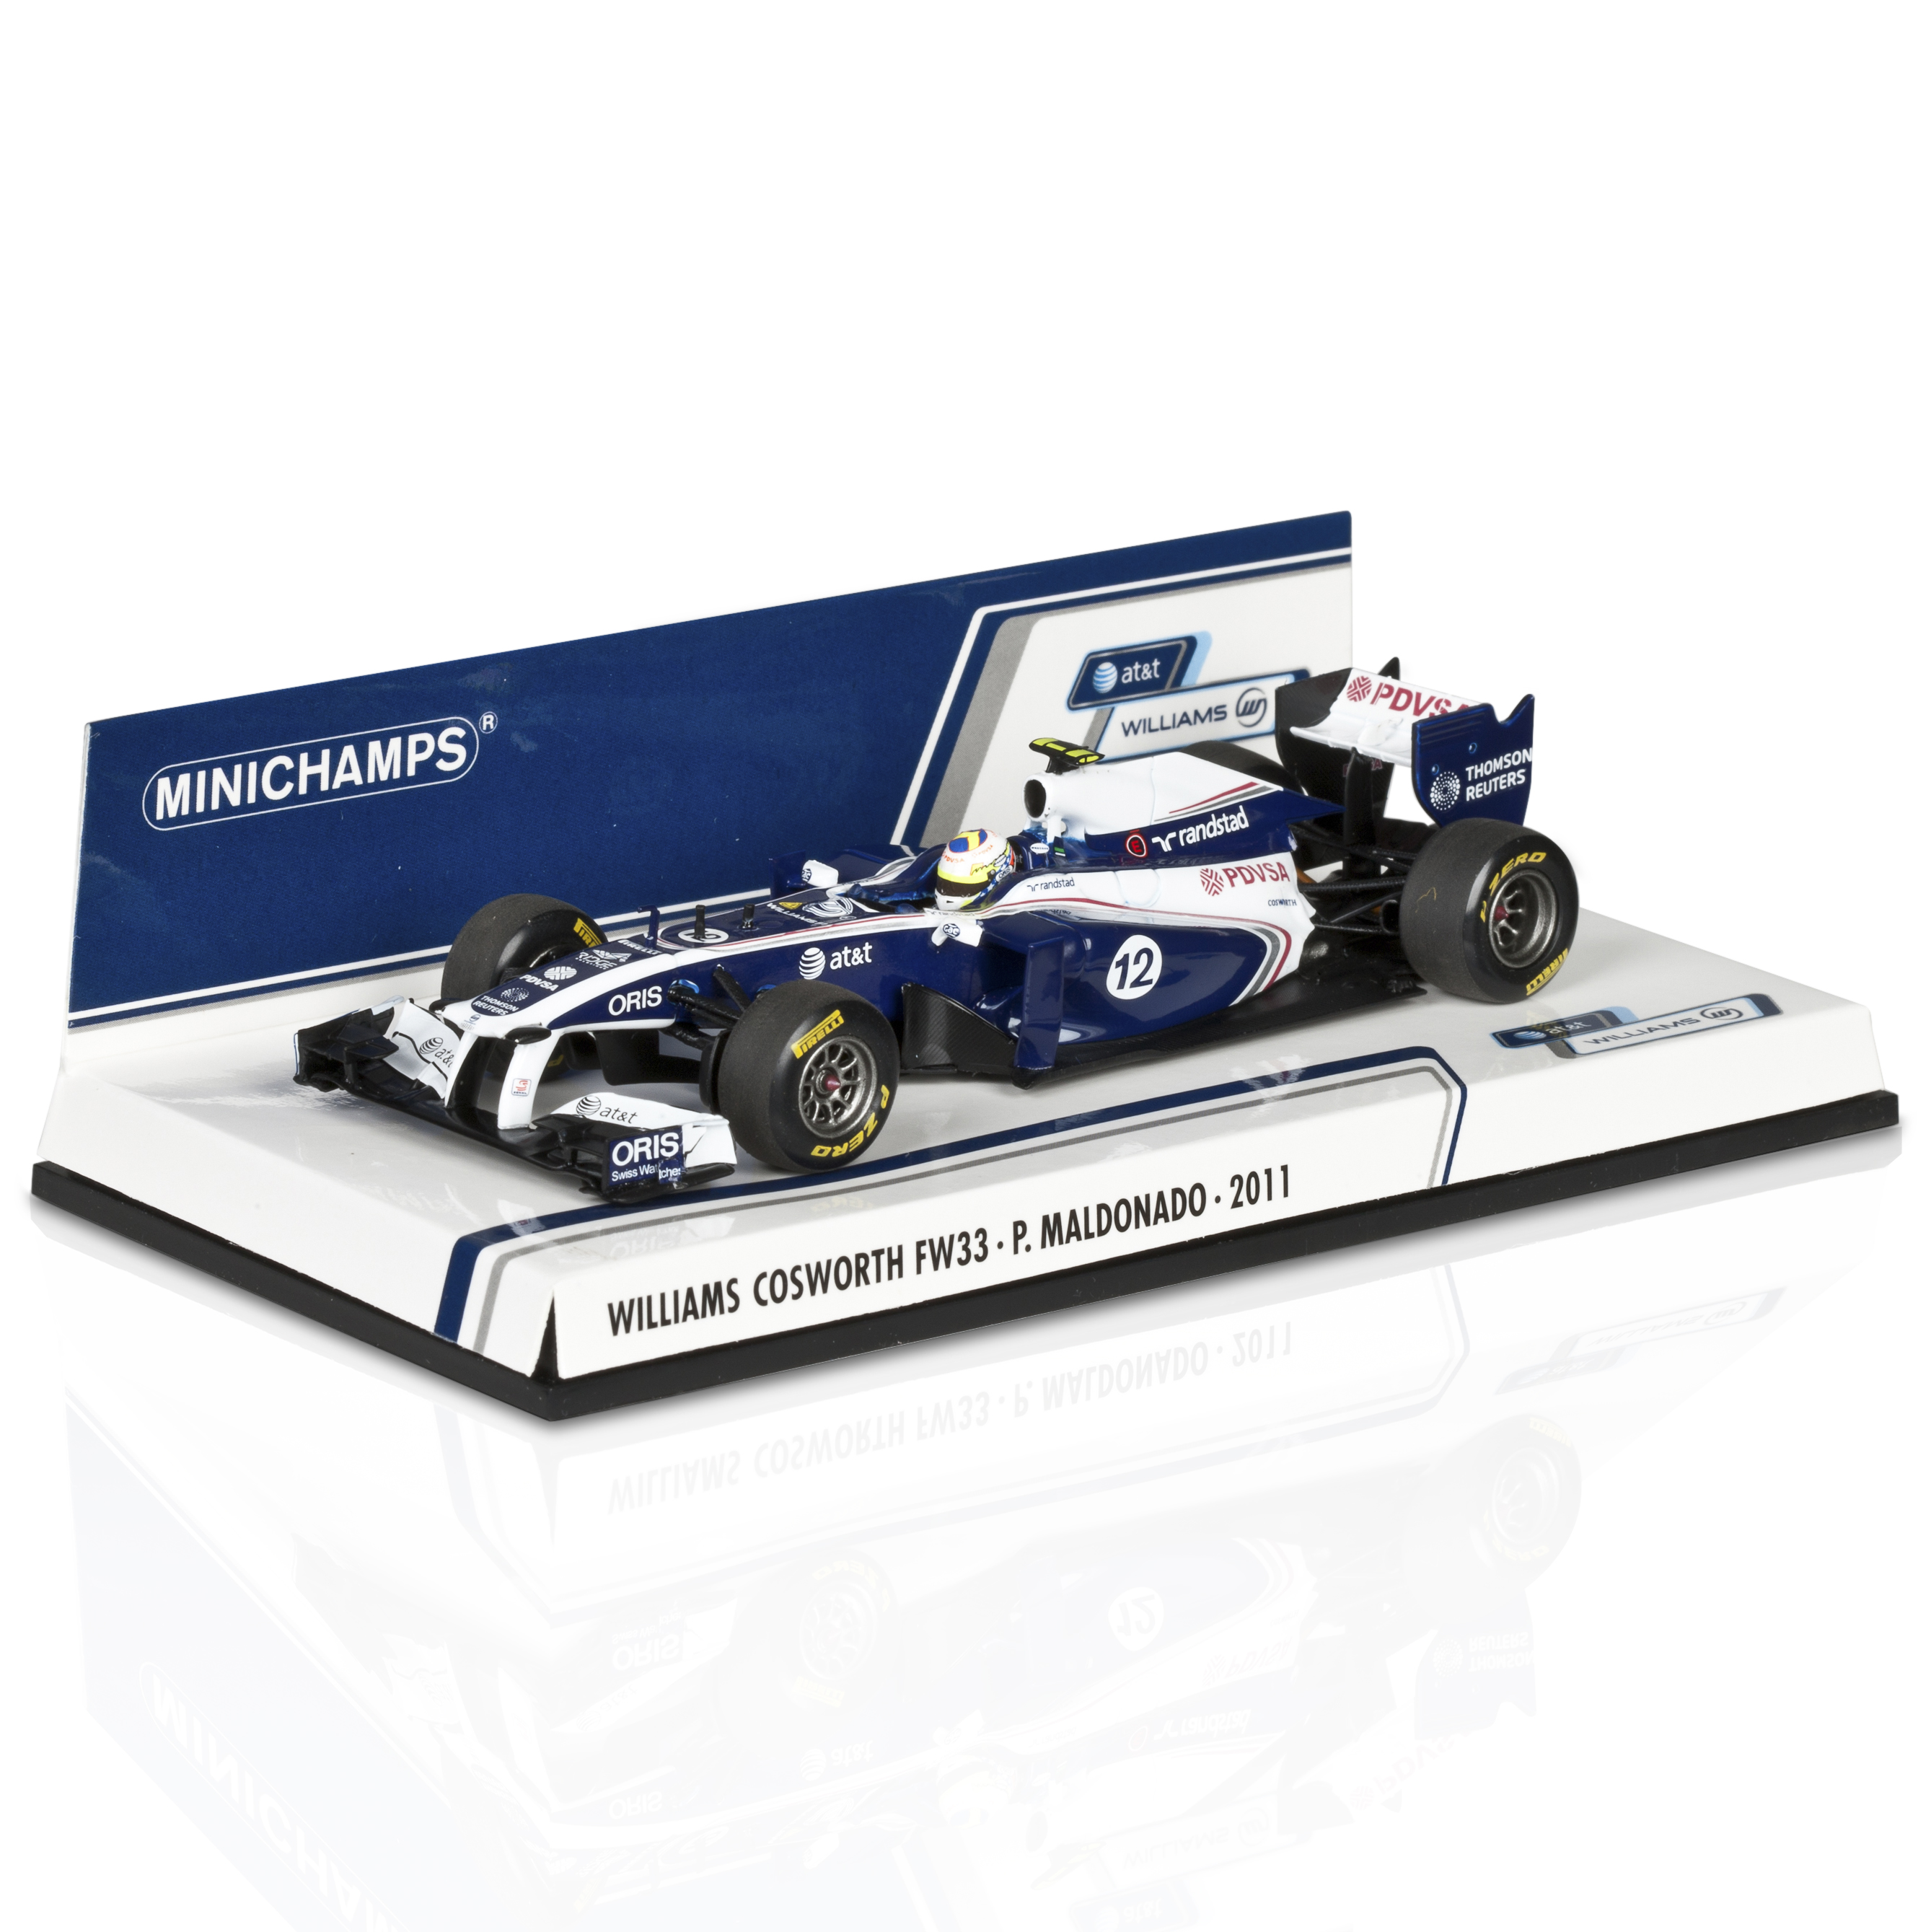 At&T Williams Cosworth FW33 Pastor Maldonado 1:43 Scale